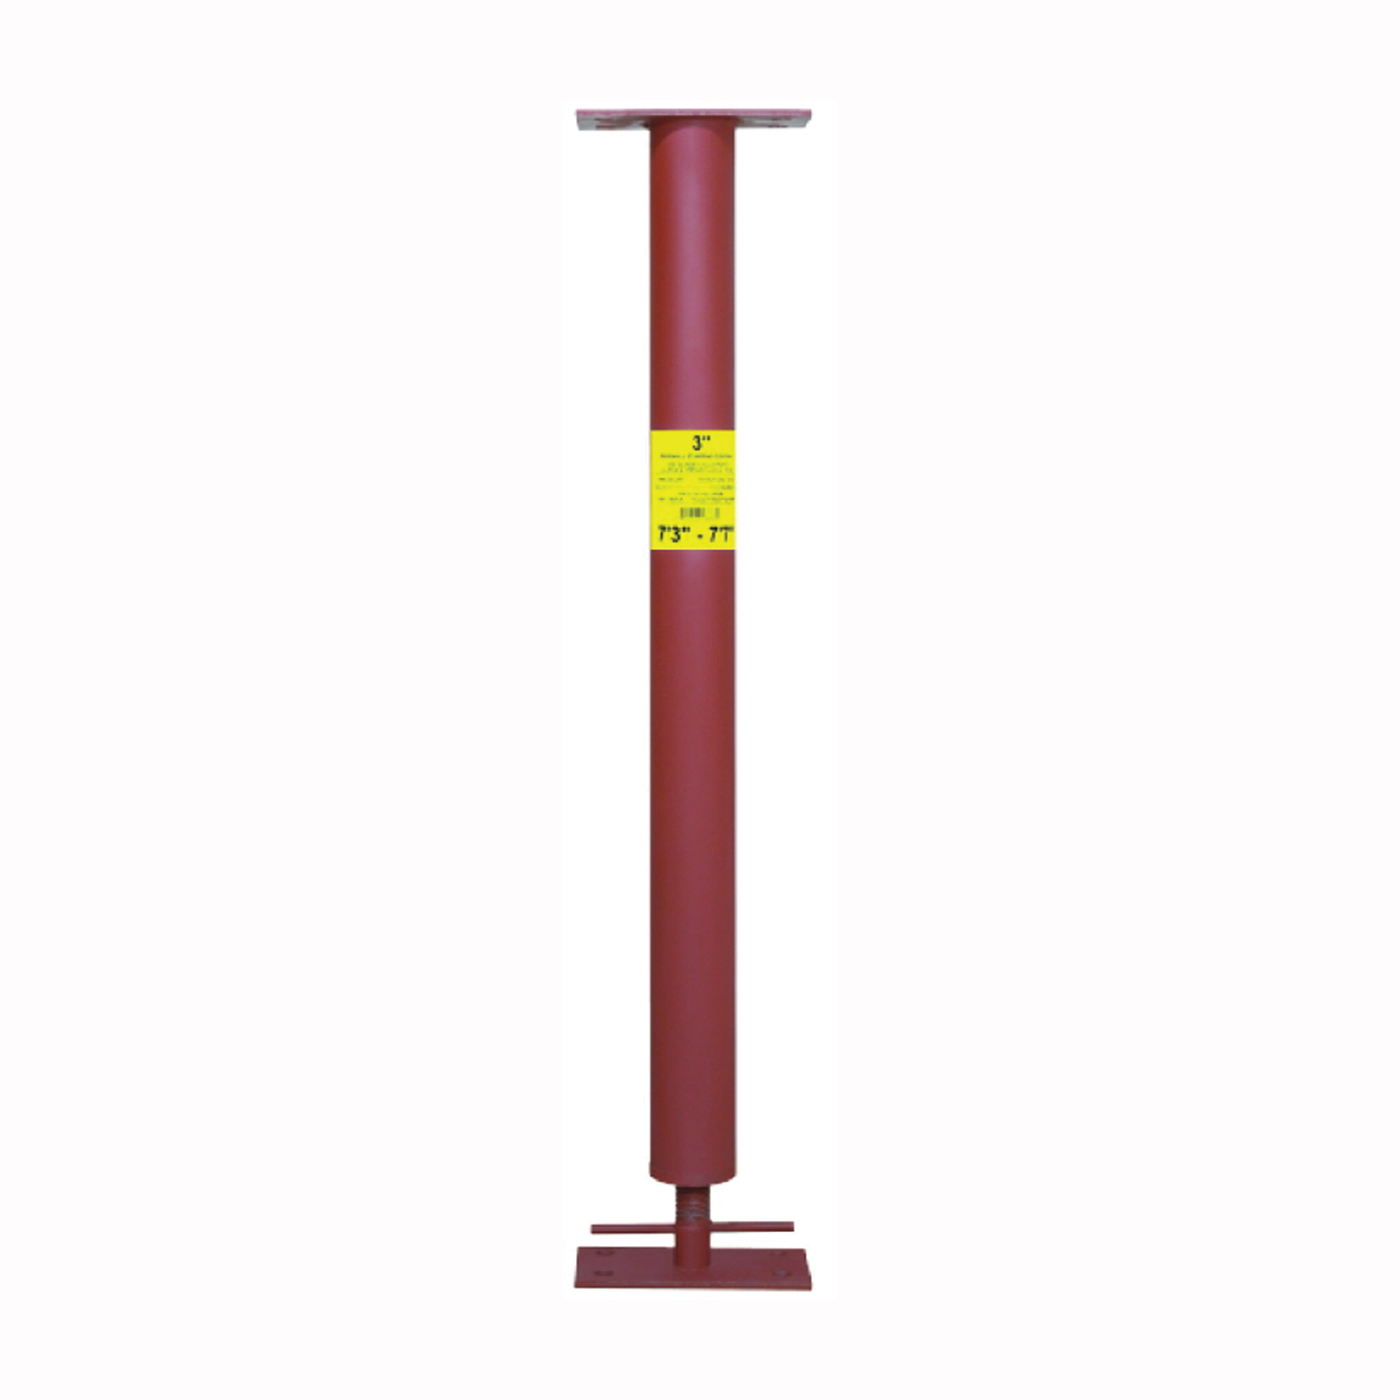 Picture of MARSHALL STAMPING Extend-O-Column AC376/3760 Round Column, 7 ft 6 in to 7 ft 10 in